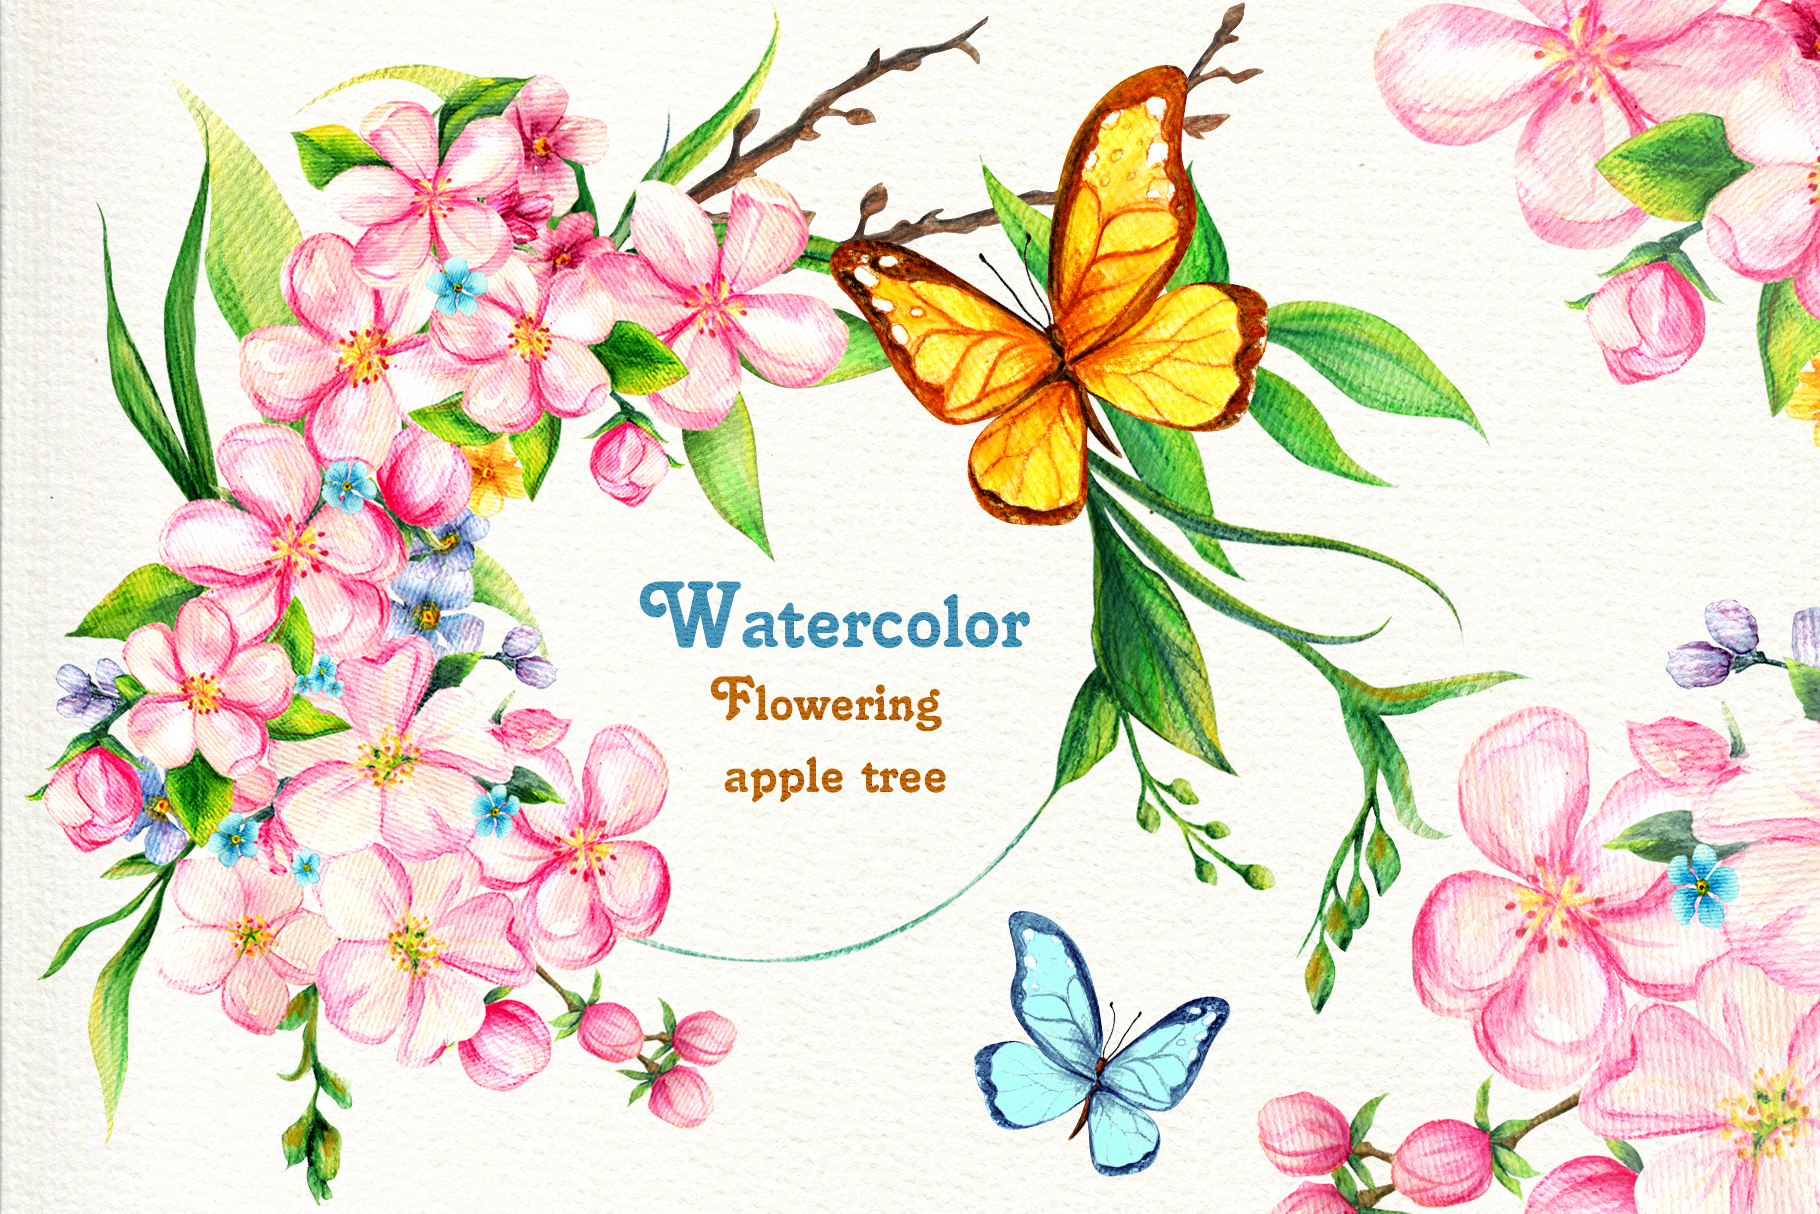 Download Free Watercolor Flowering Apple Tree Big Set Graphic By Ladymishka for Cricut Explore, Silhouette and other cutting machines.